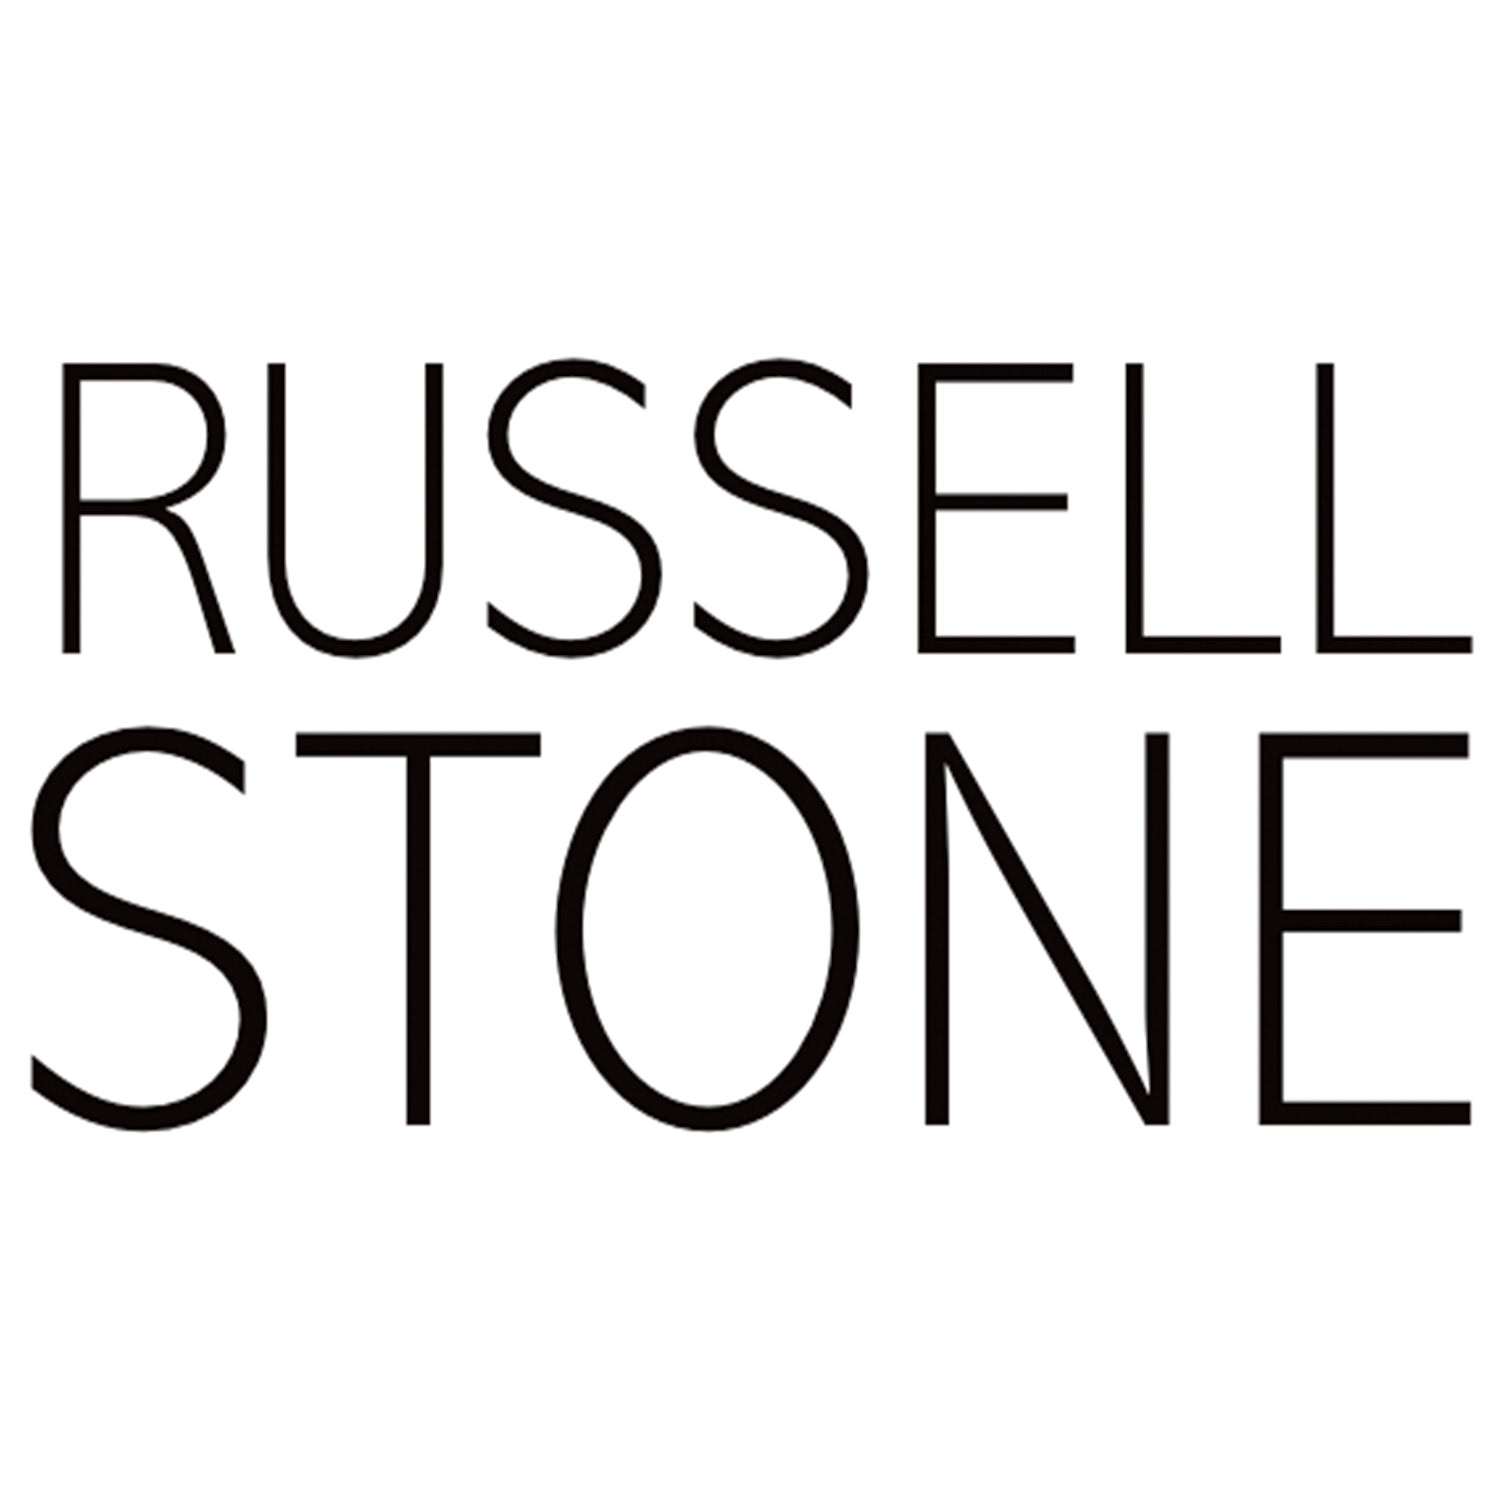 Russell Stone